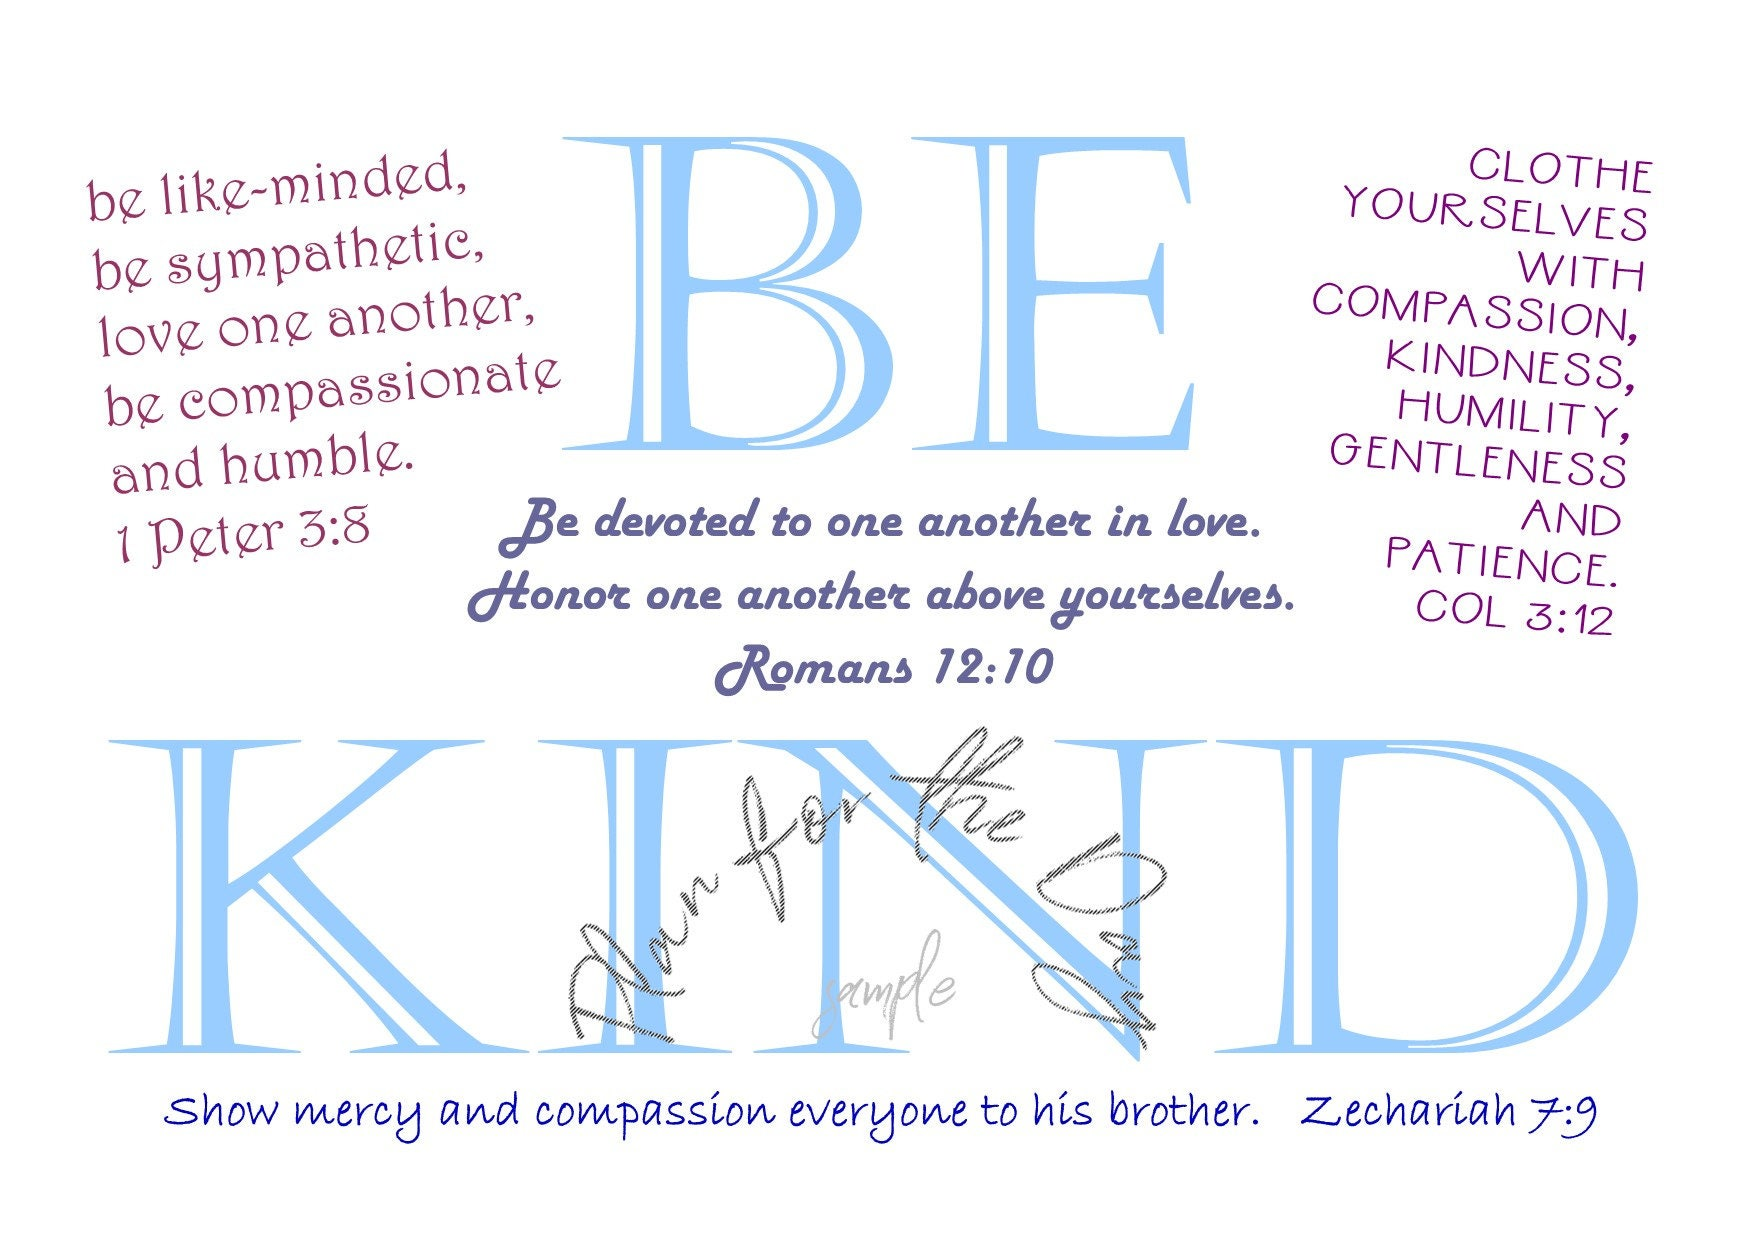 what does the bible say about showing kindness